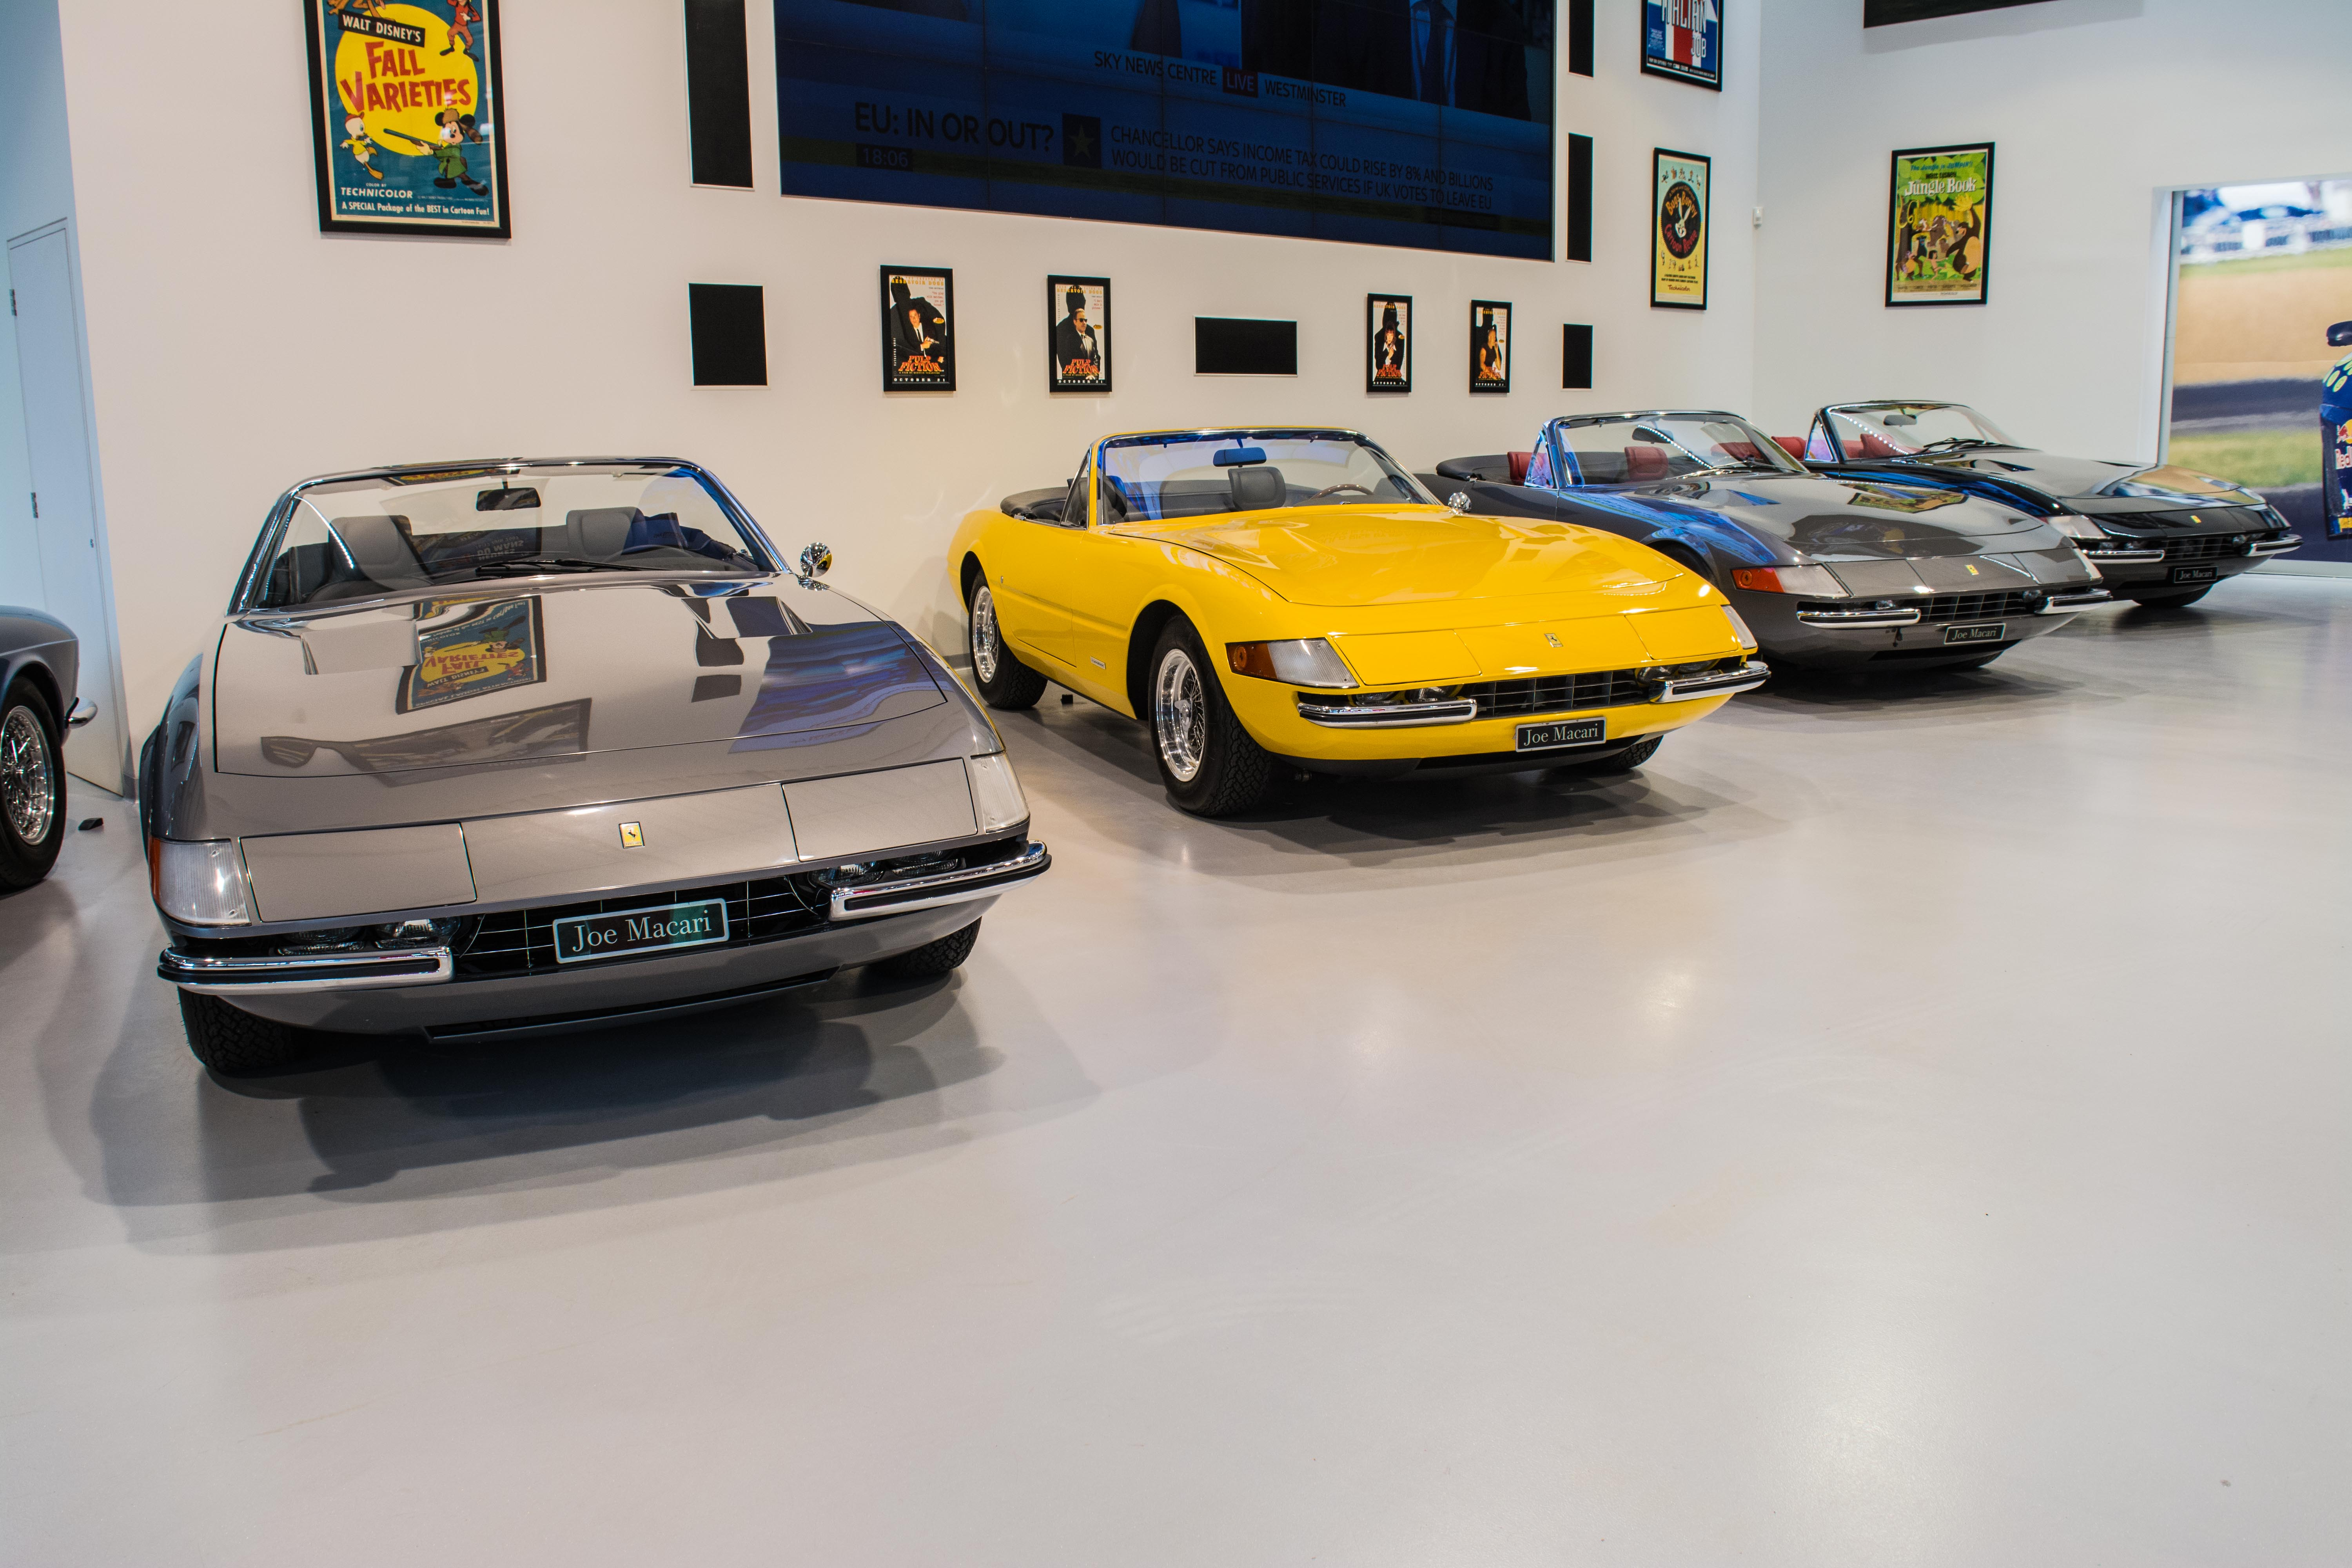 Ferrari Daytona Sypders pictured in the Joe Macari showroom